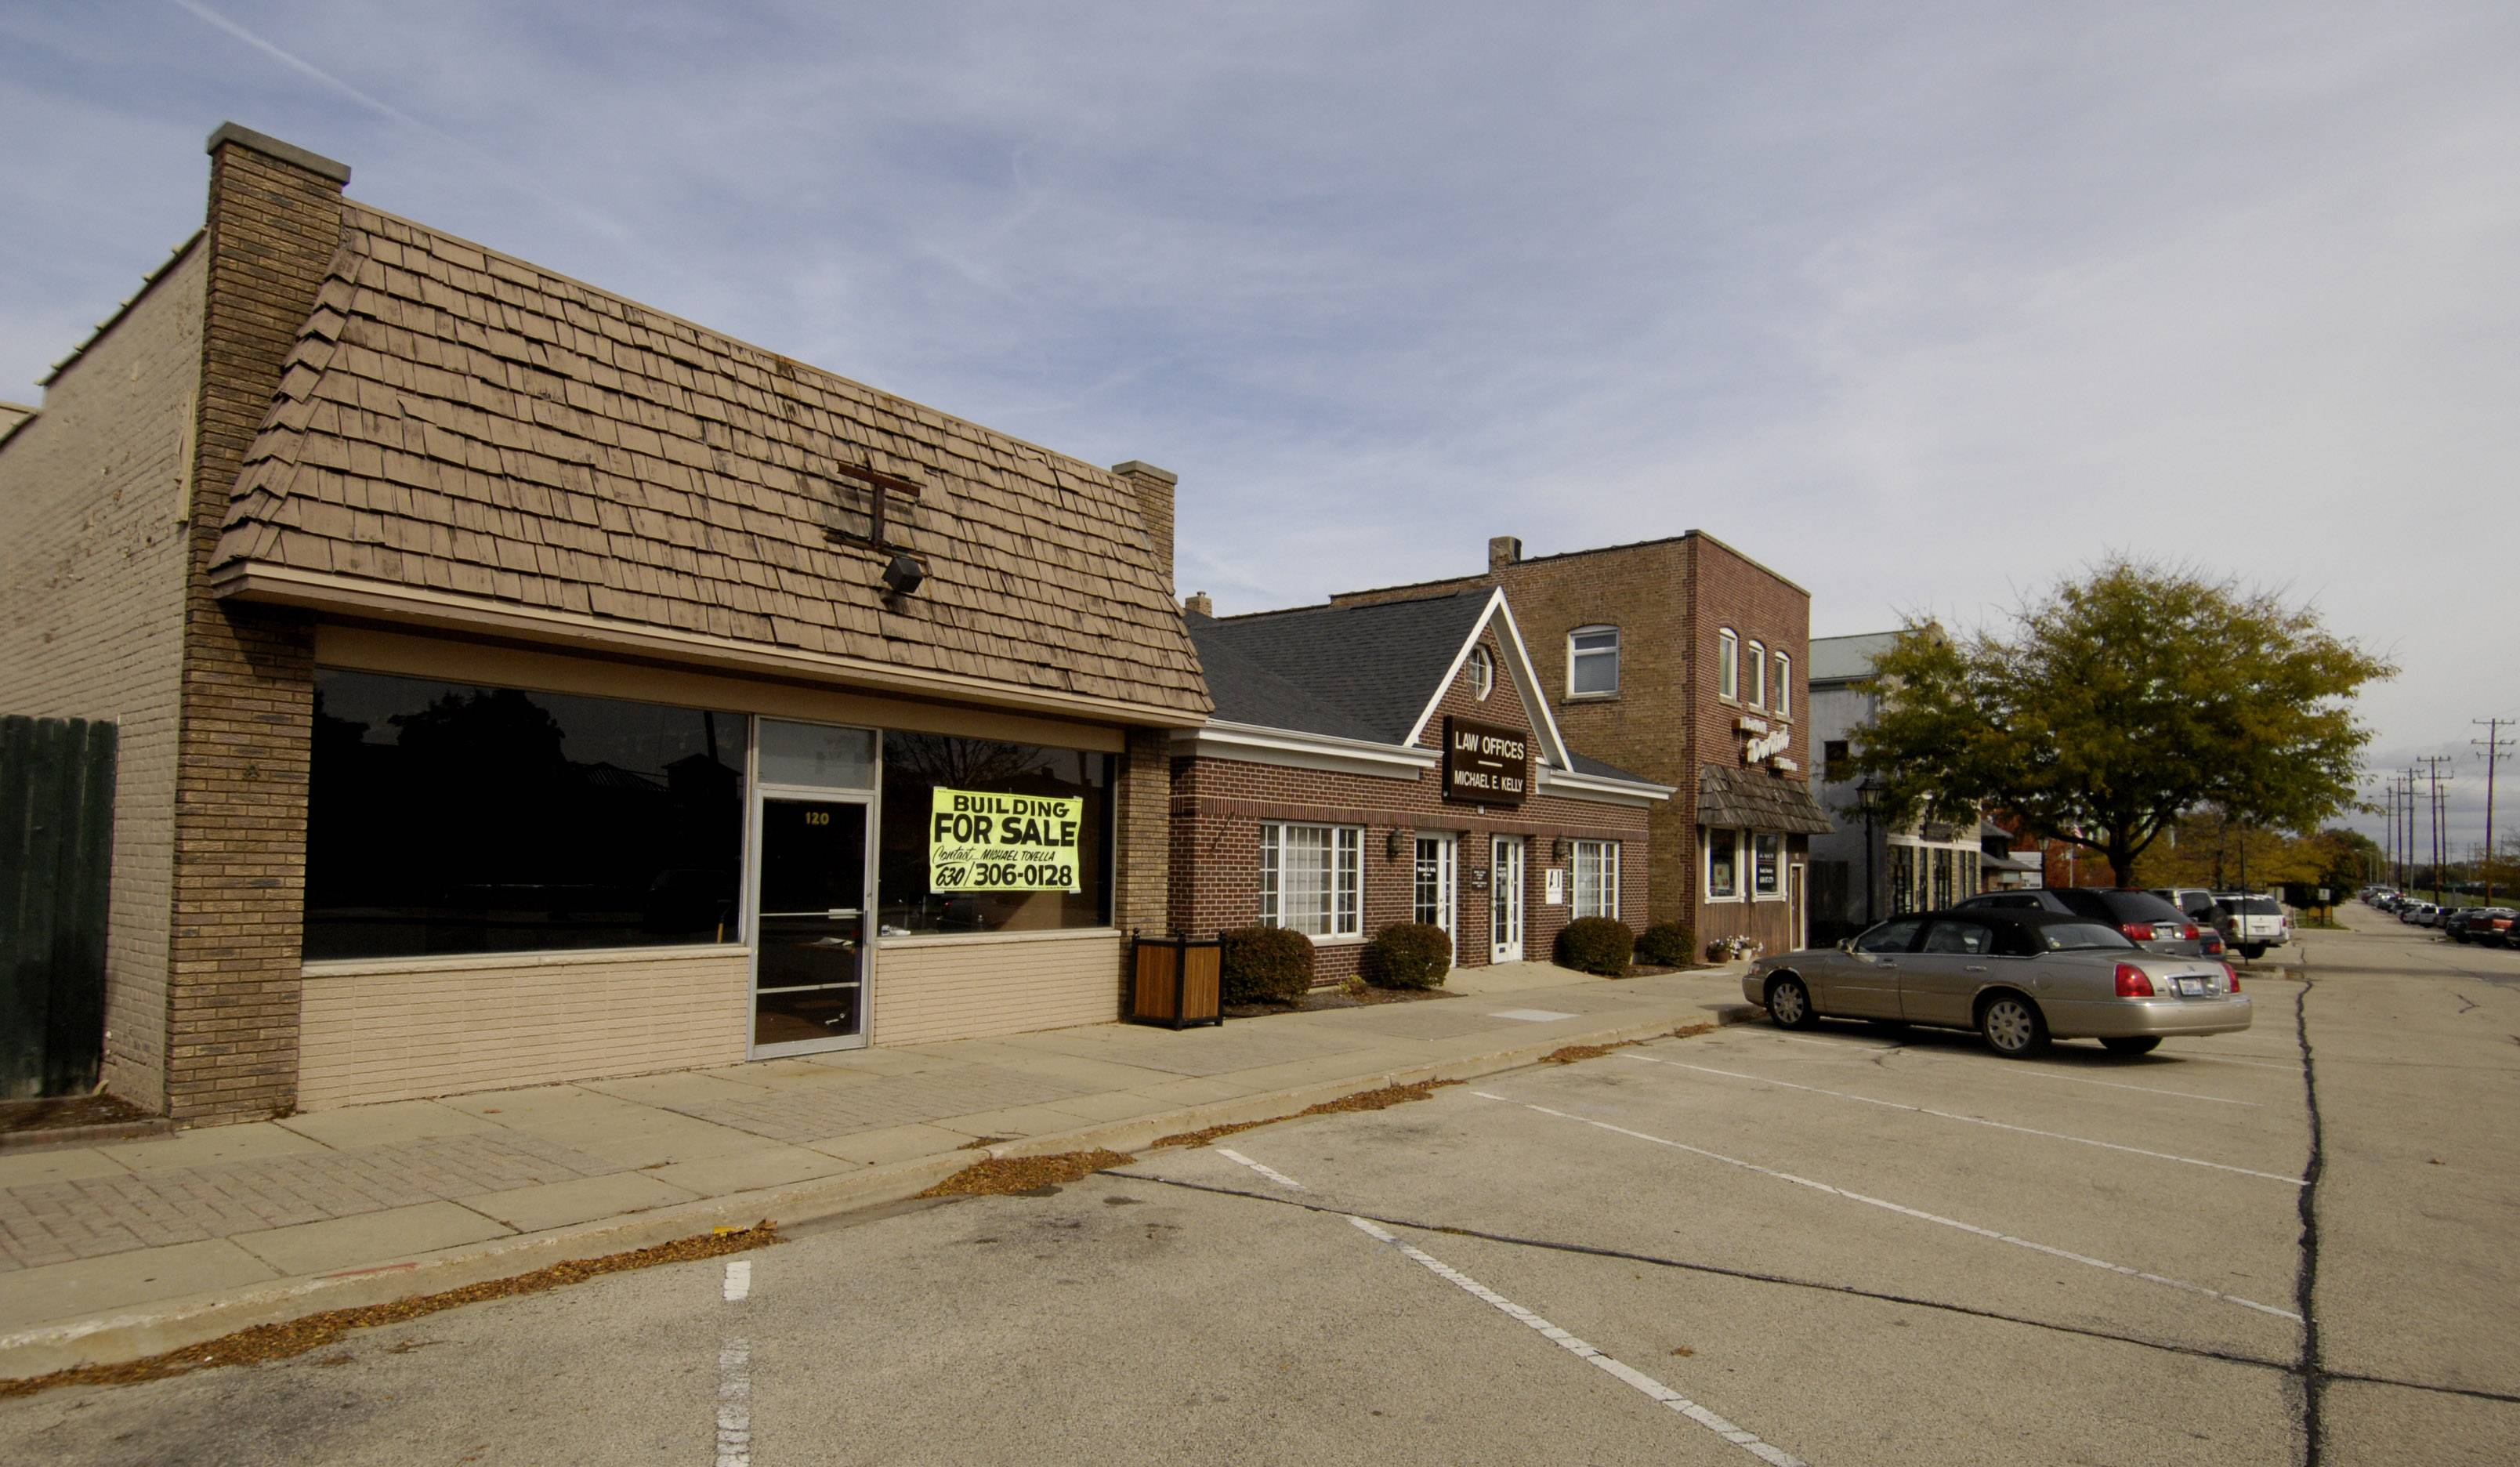 Bartlett officials are considering the establishment of a new Tax Increment Financing district in the village's downtown. Proponents say TIF districts provide a boost to economic development efforts.